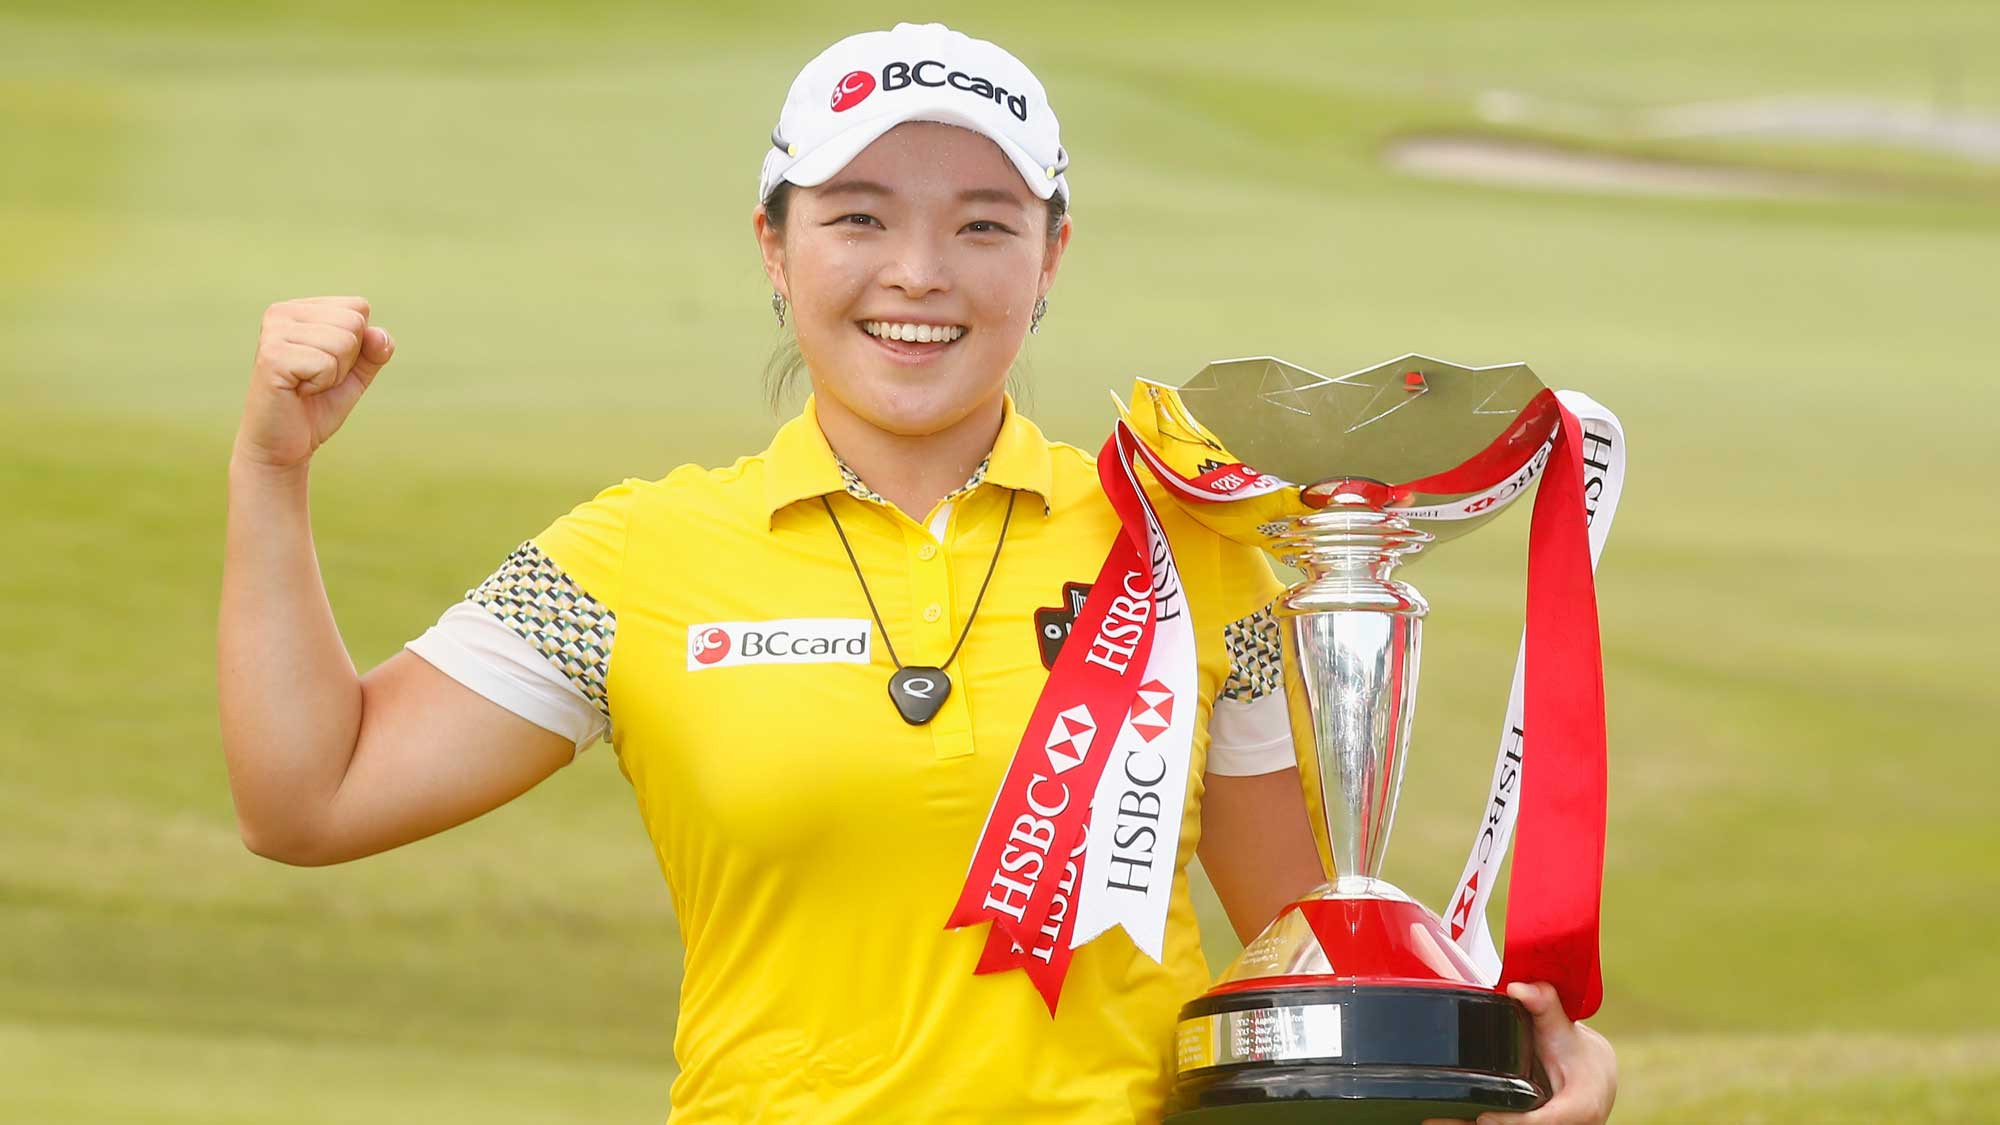 Defending champion HaNa Jang